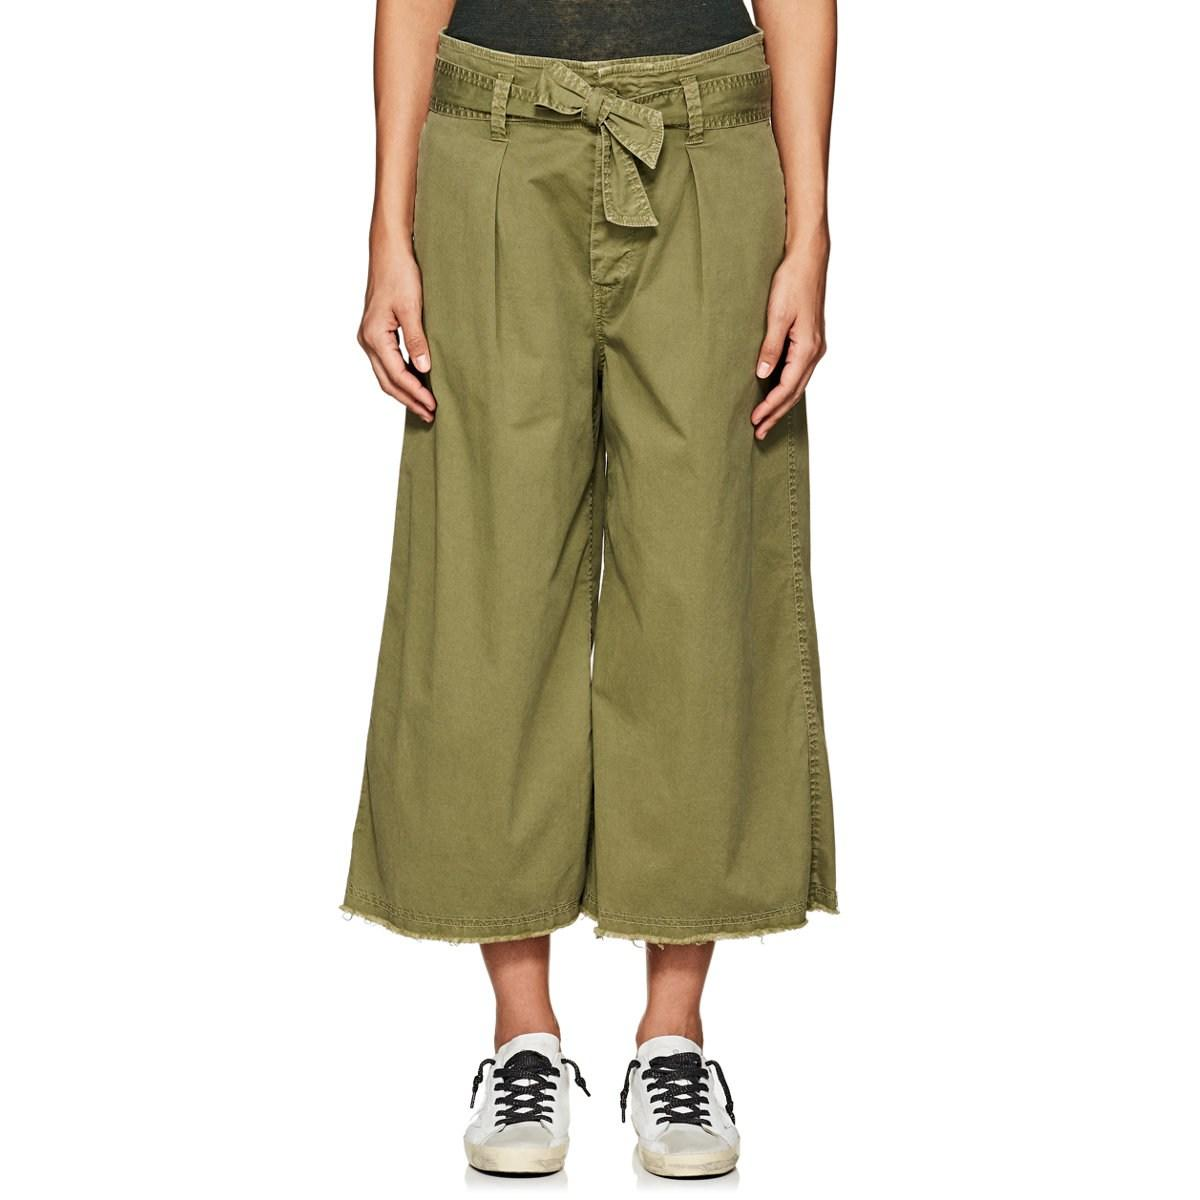 Lotan Green Drop Ellie Blend Rise In Lyst Cotton Culottes Nili kZiTOXuP